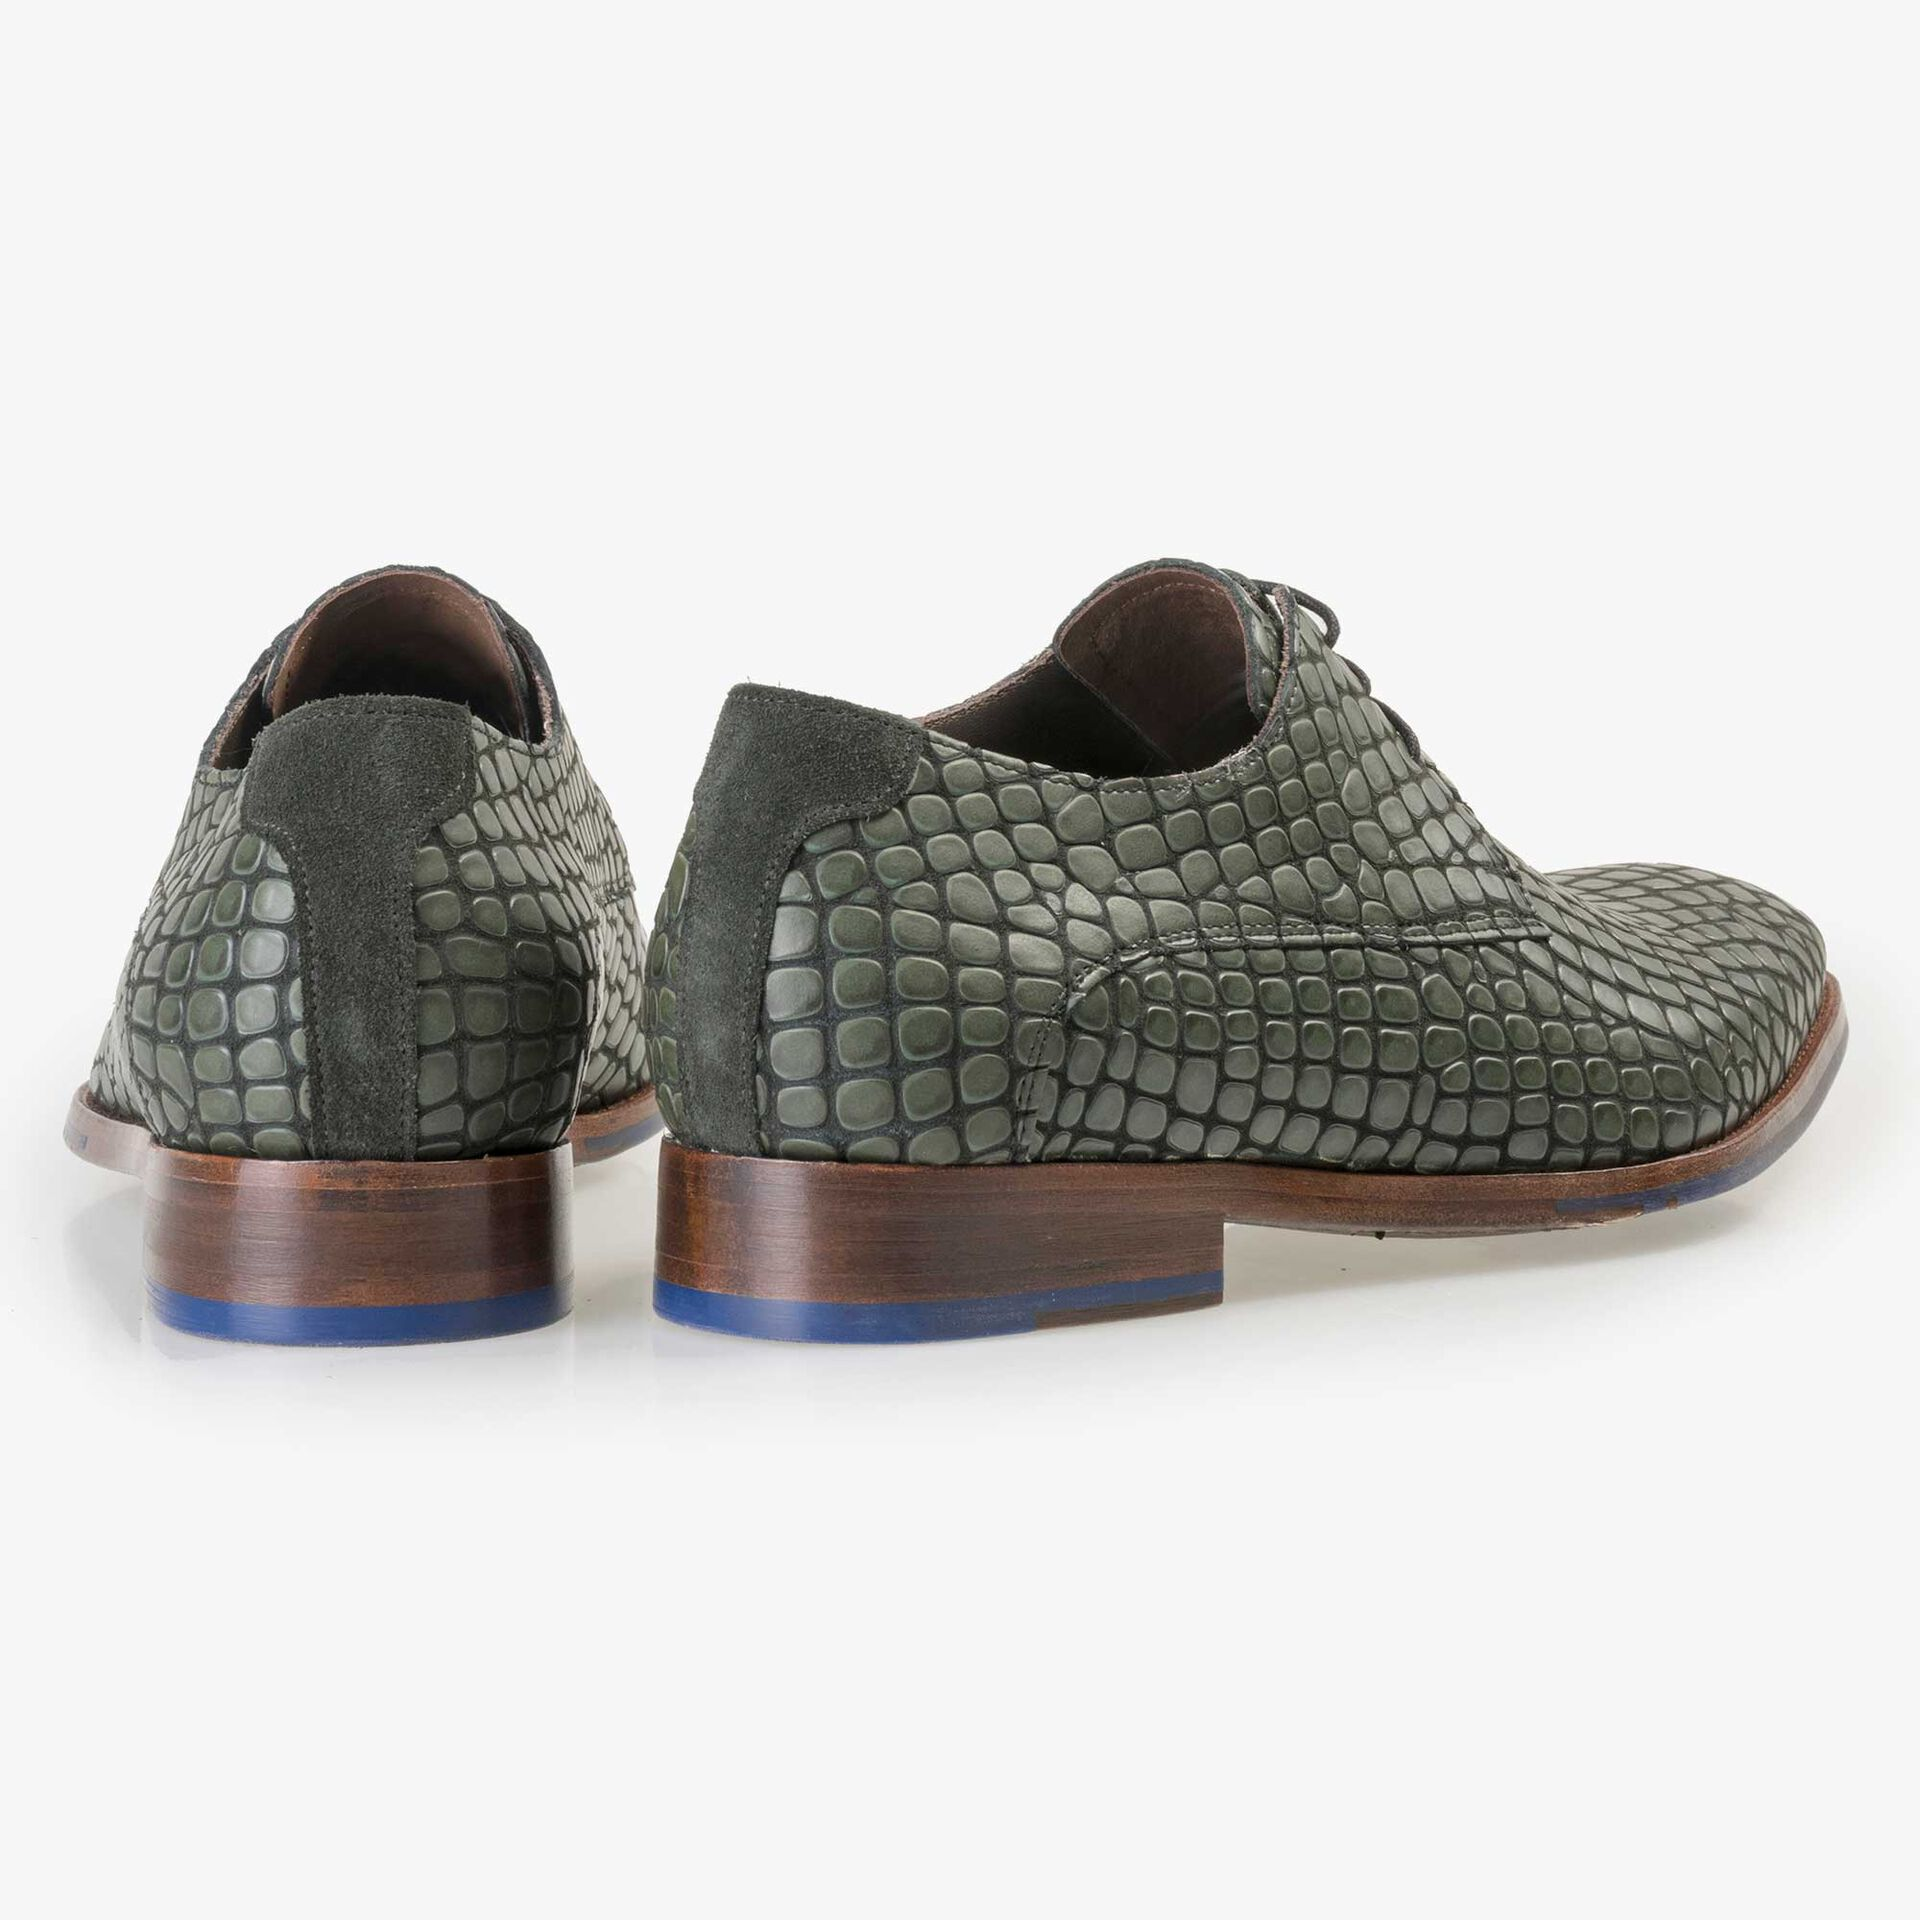 Floris van Bommel black calf's leather lace shoe finished with a green reptile pattern